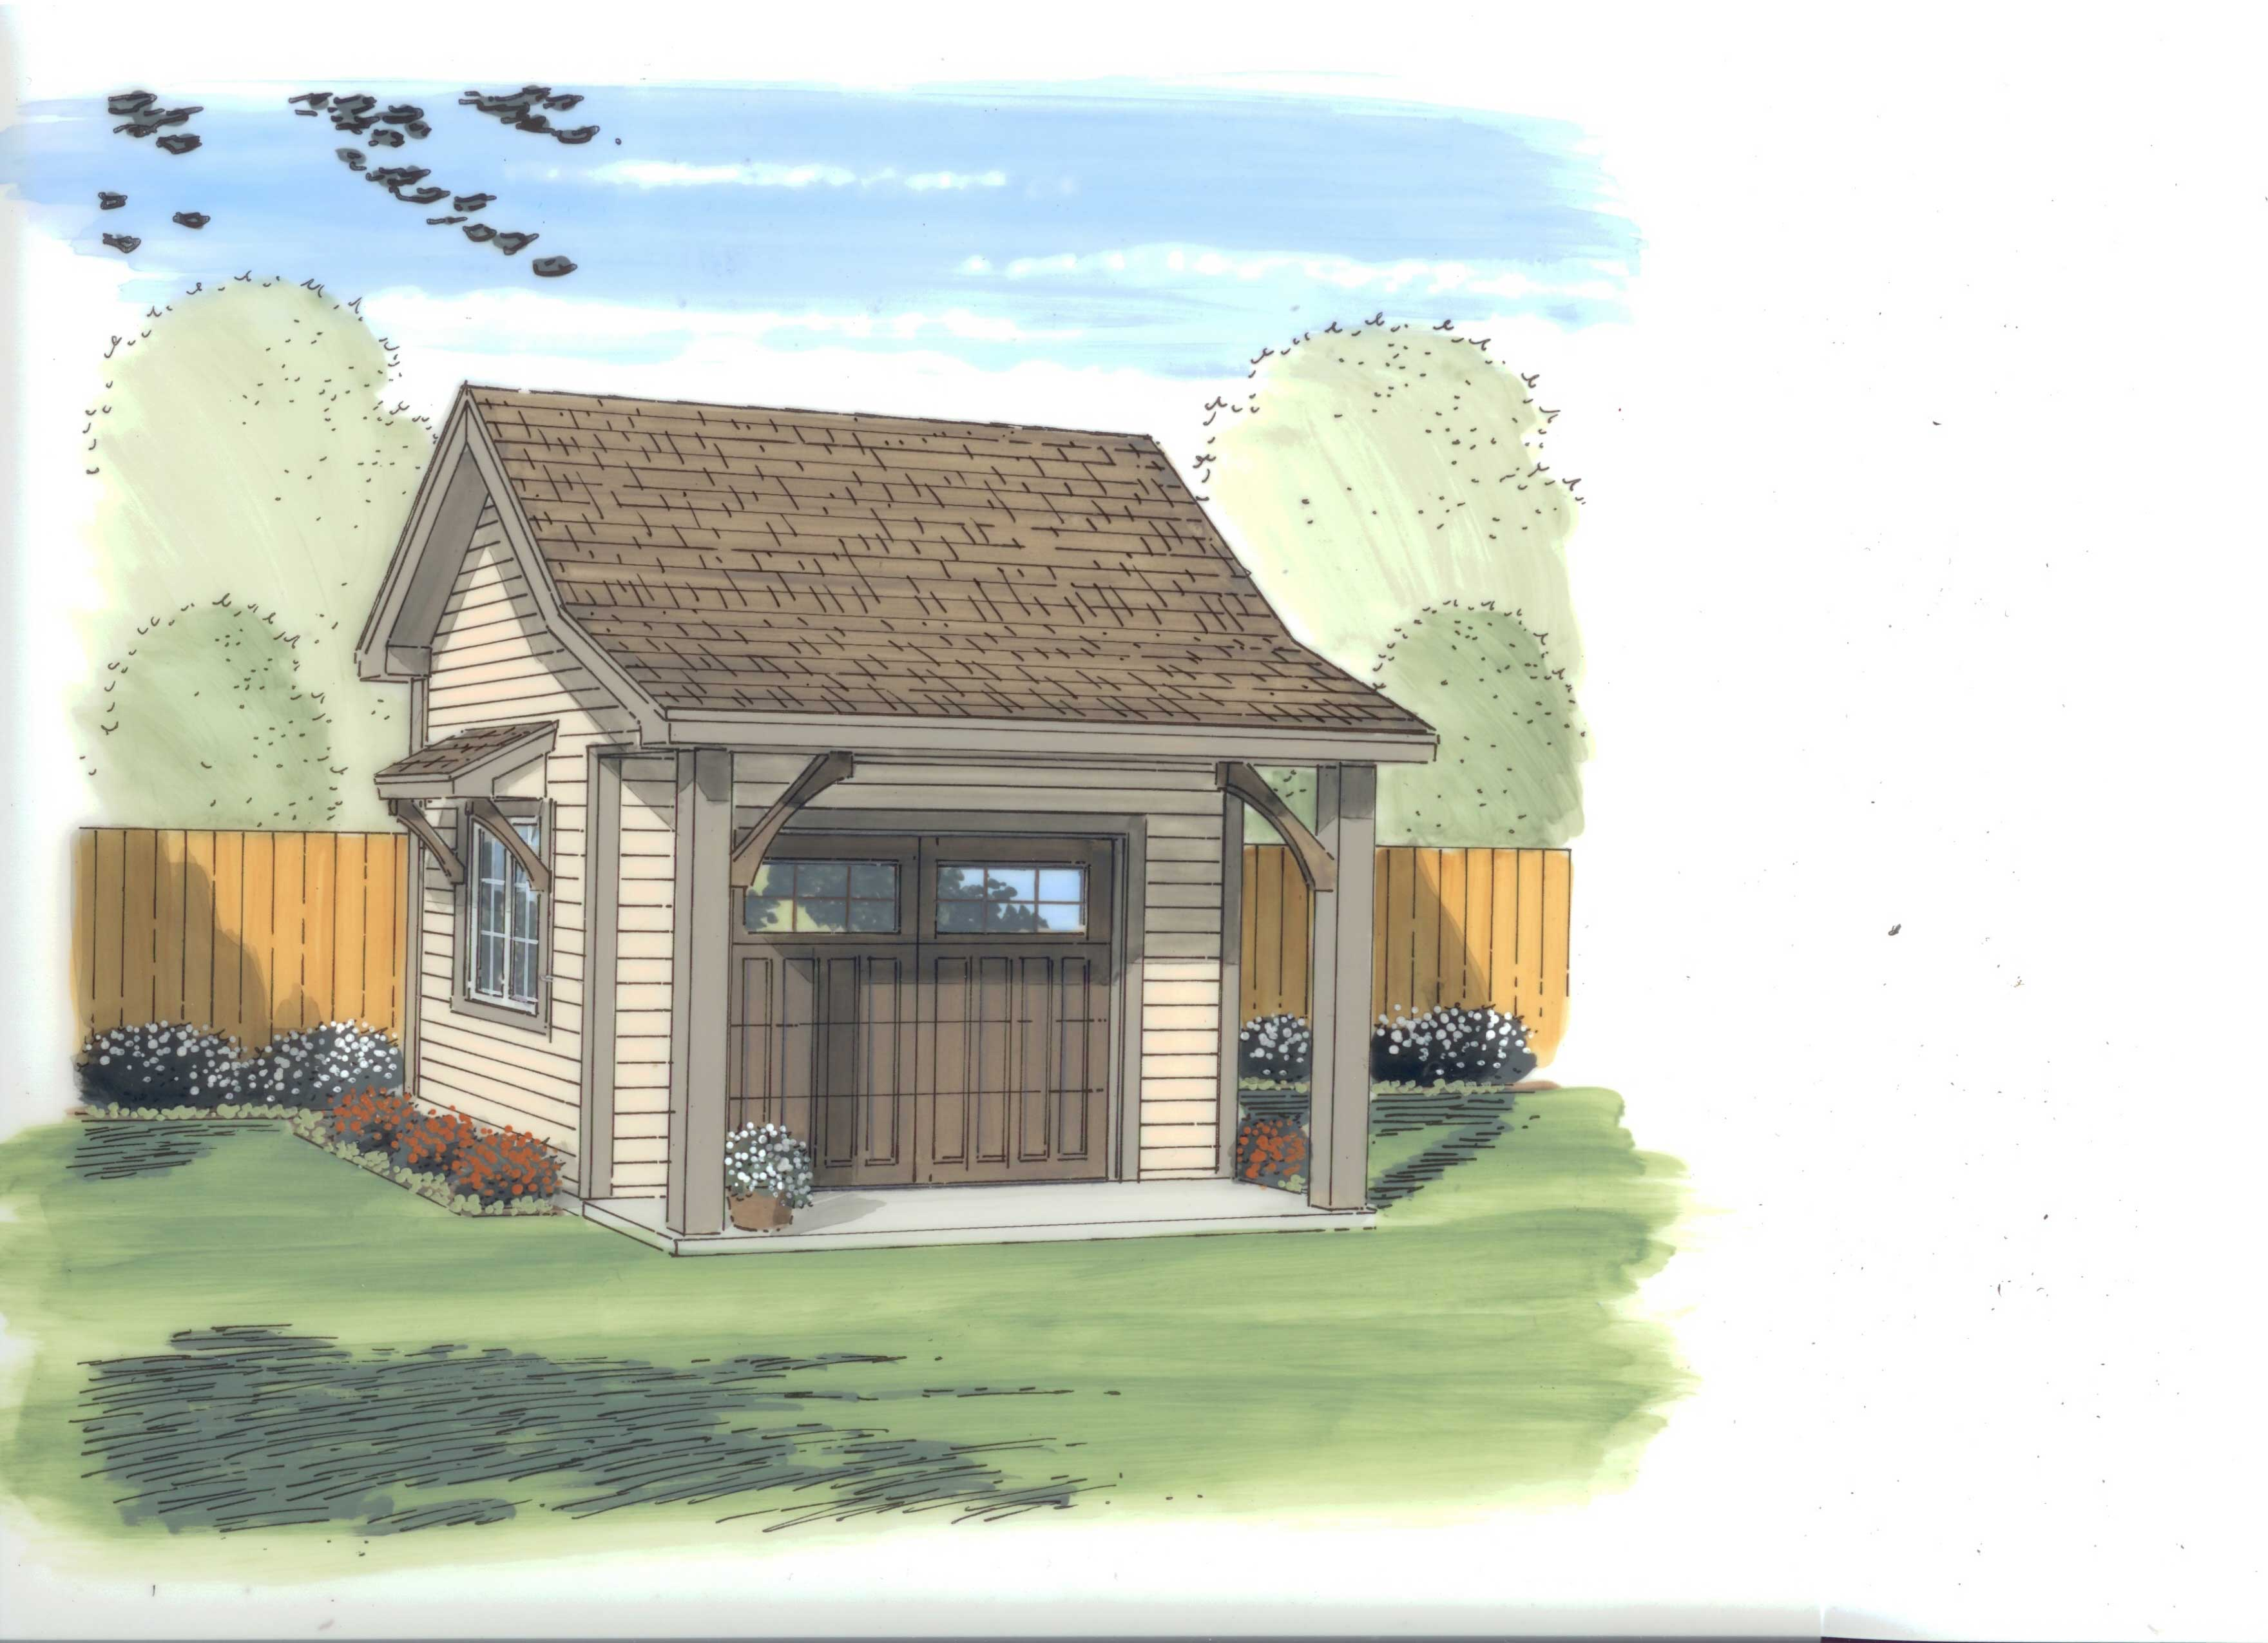 specialty home plan - 0 bedrms  0 baths - 144 sq ft